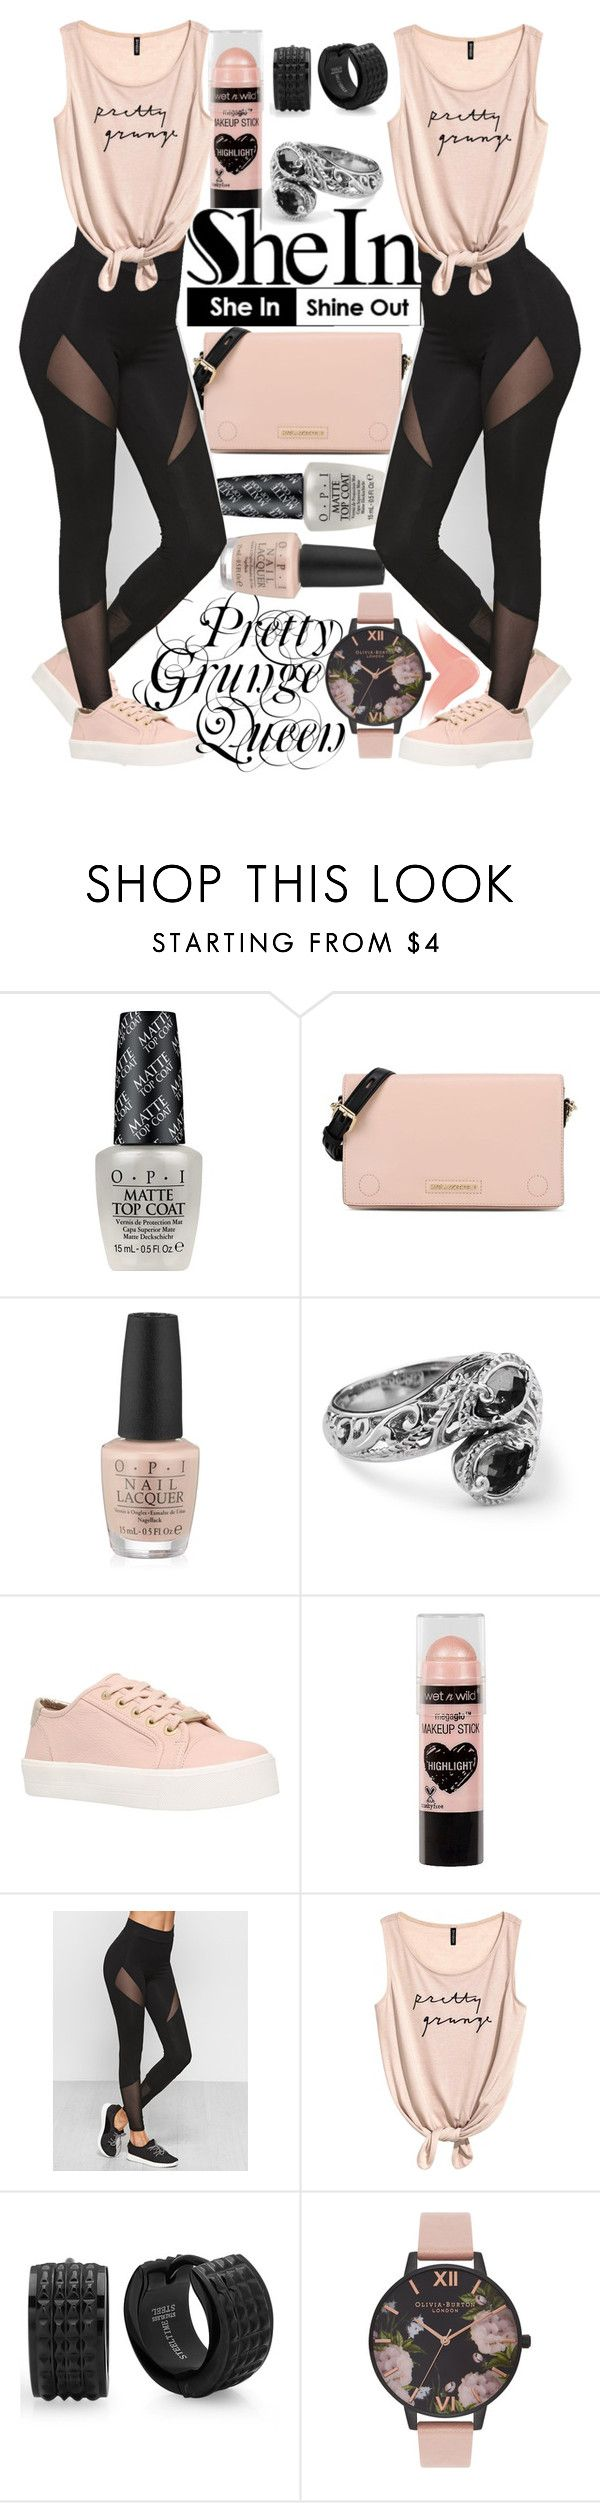 """""""Pretty Grunge Queen"""" by thea-bleasdille ❤ liked on Polyvore featuring OPI, Karl Lagerfeld, Carvela, Wet n Wild, Olivia Burton and Burberry"""